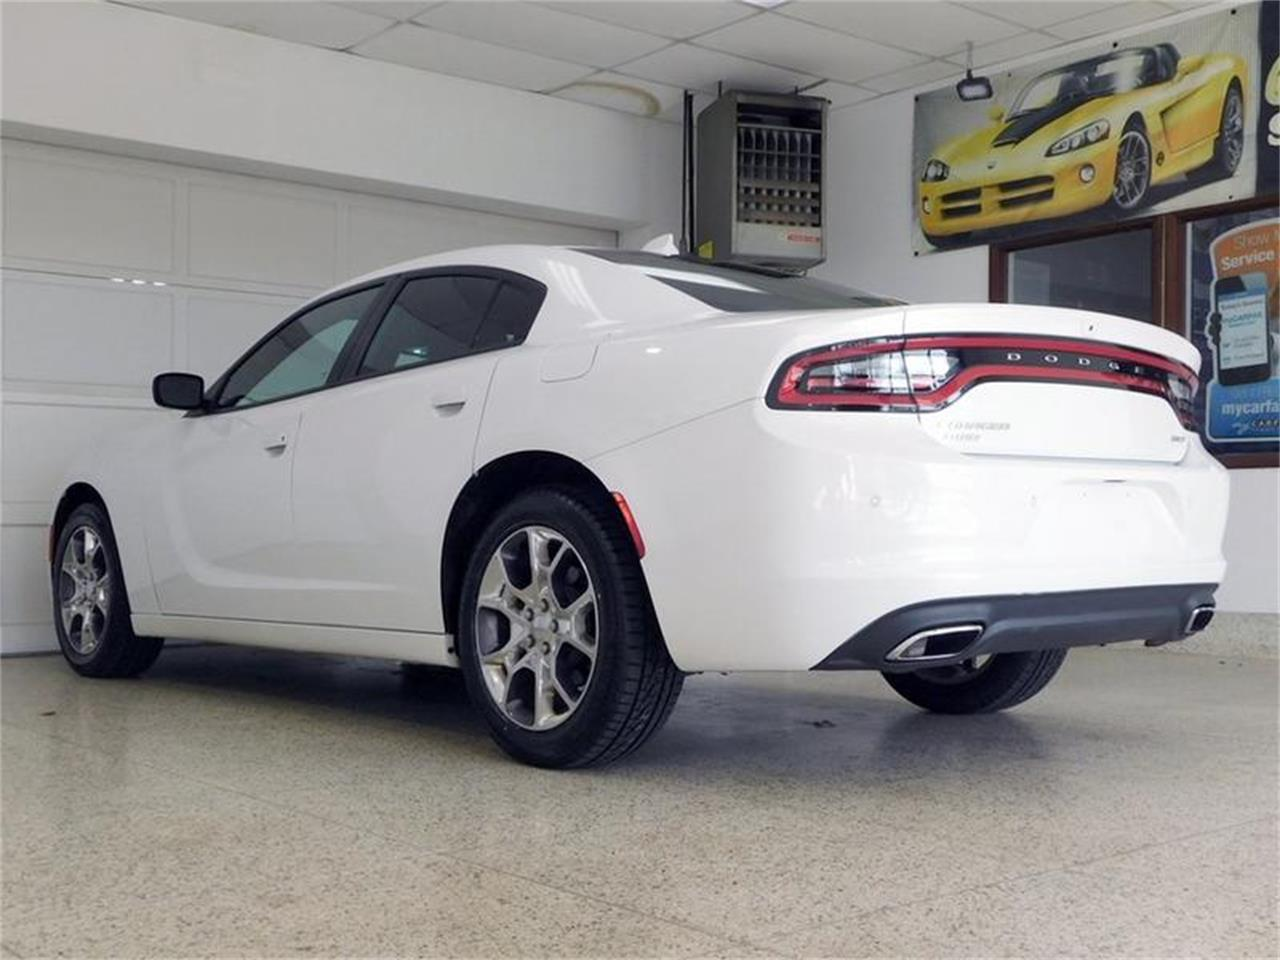 2015 Dodge Charger (CC-1263942) for sale in Hamburg, New York